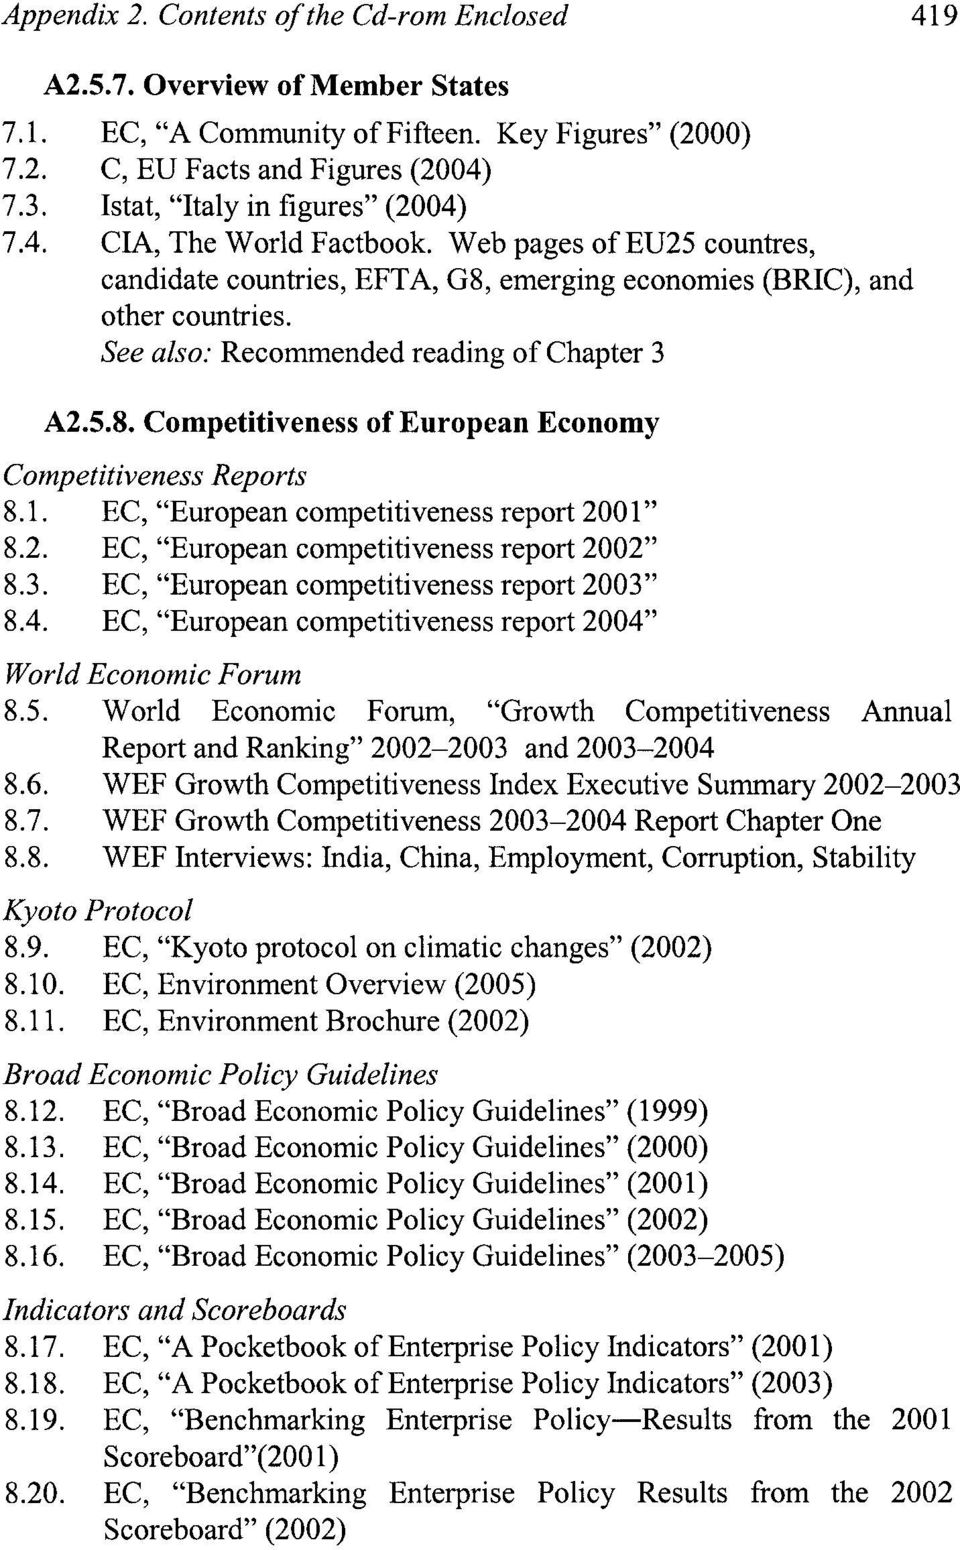 "See also: Recommended reading of Chapter 3 A2.5.8. Competitiveness of European Economy Competitiveness Reports 8.1. EC, ""European competitiveness report 2001"" 8.2. EC, ""European competitiveness report 2002"" 8."